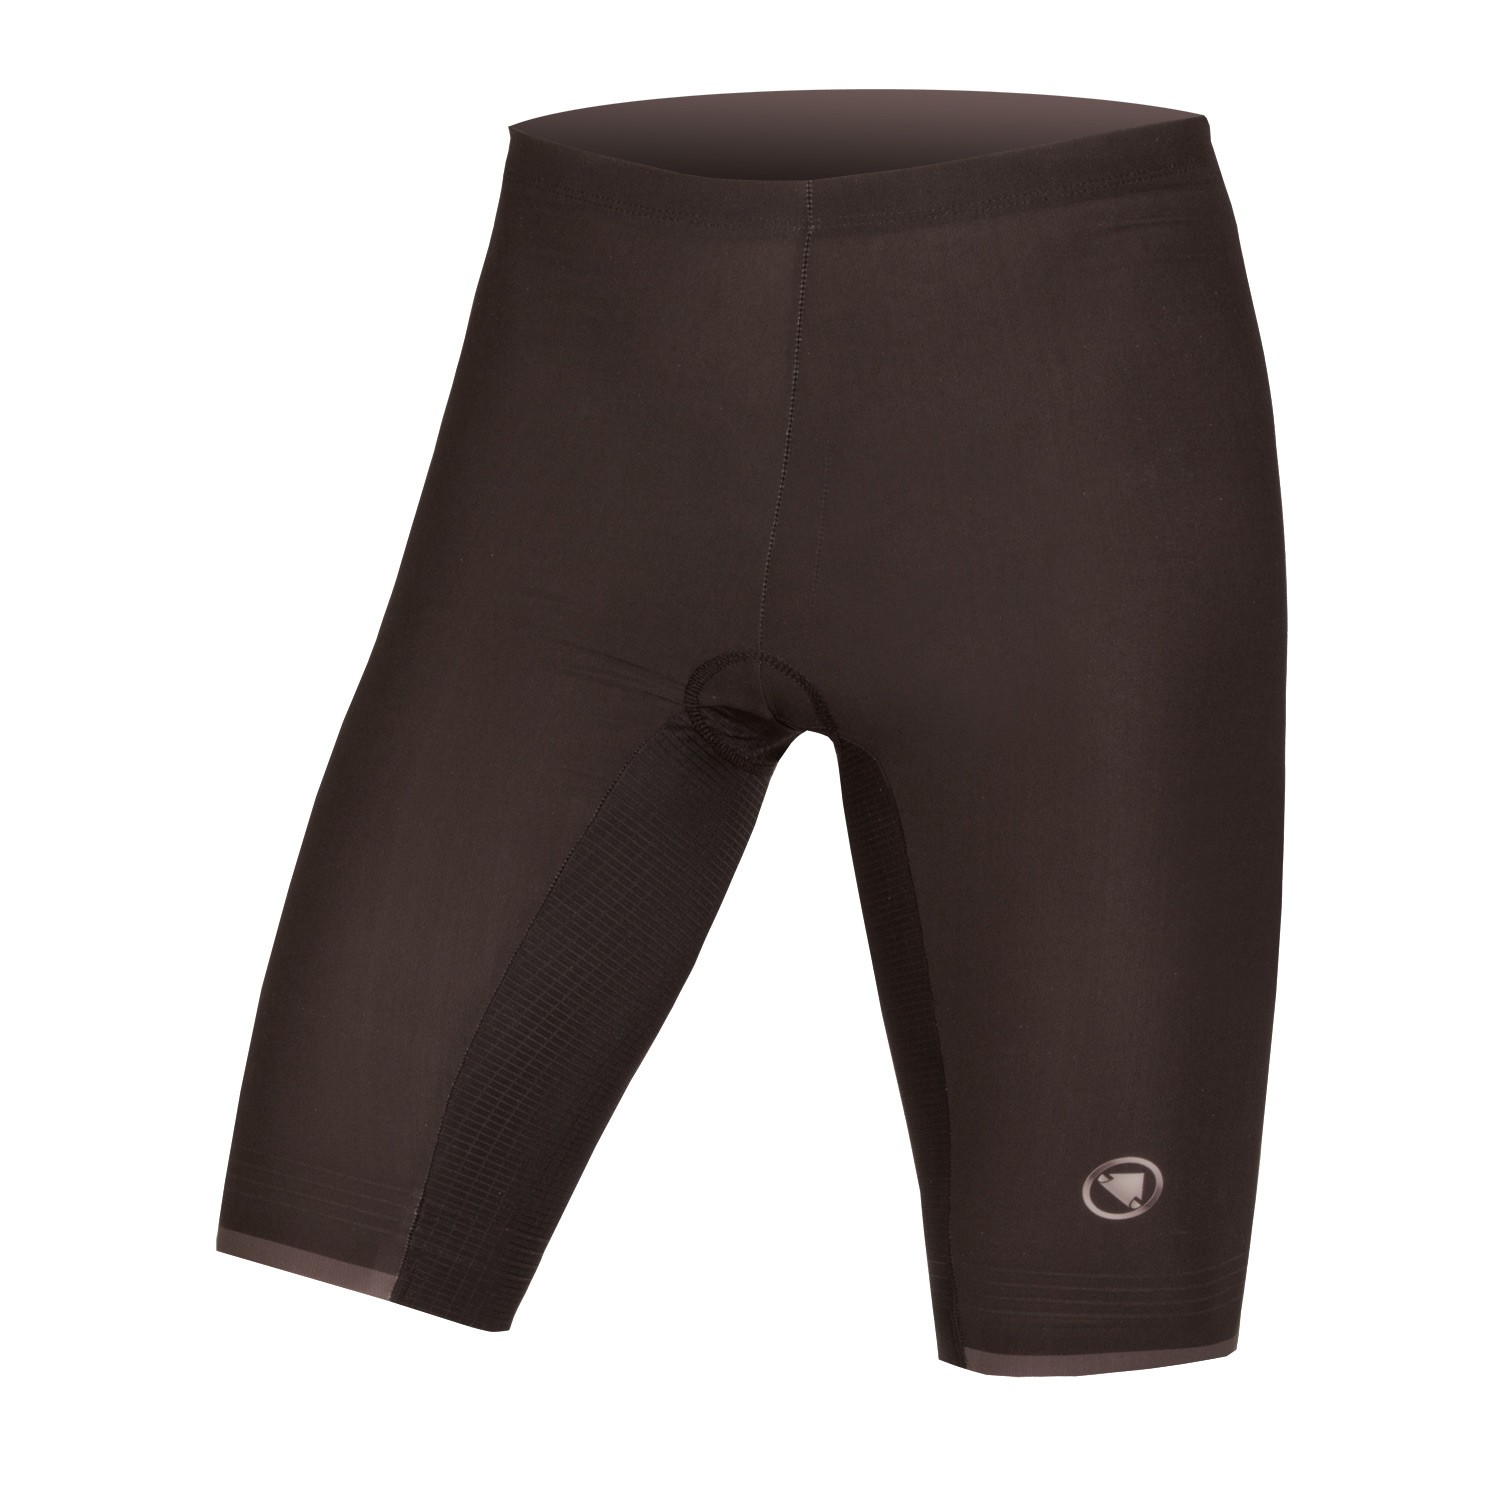 QDC Drag2Zero Tri Short Black